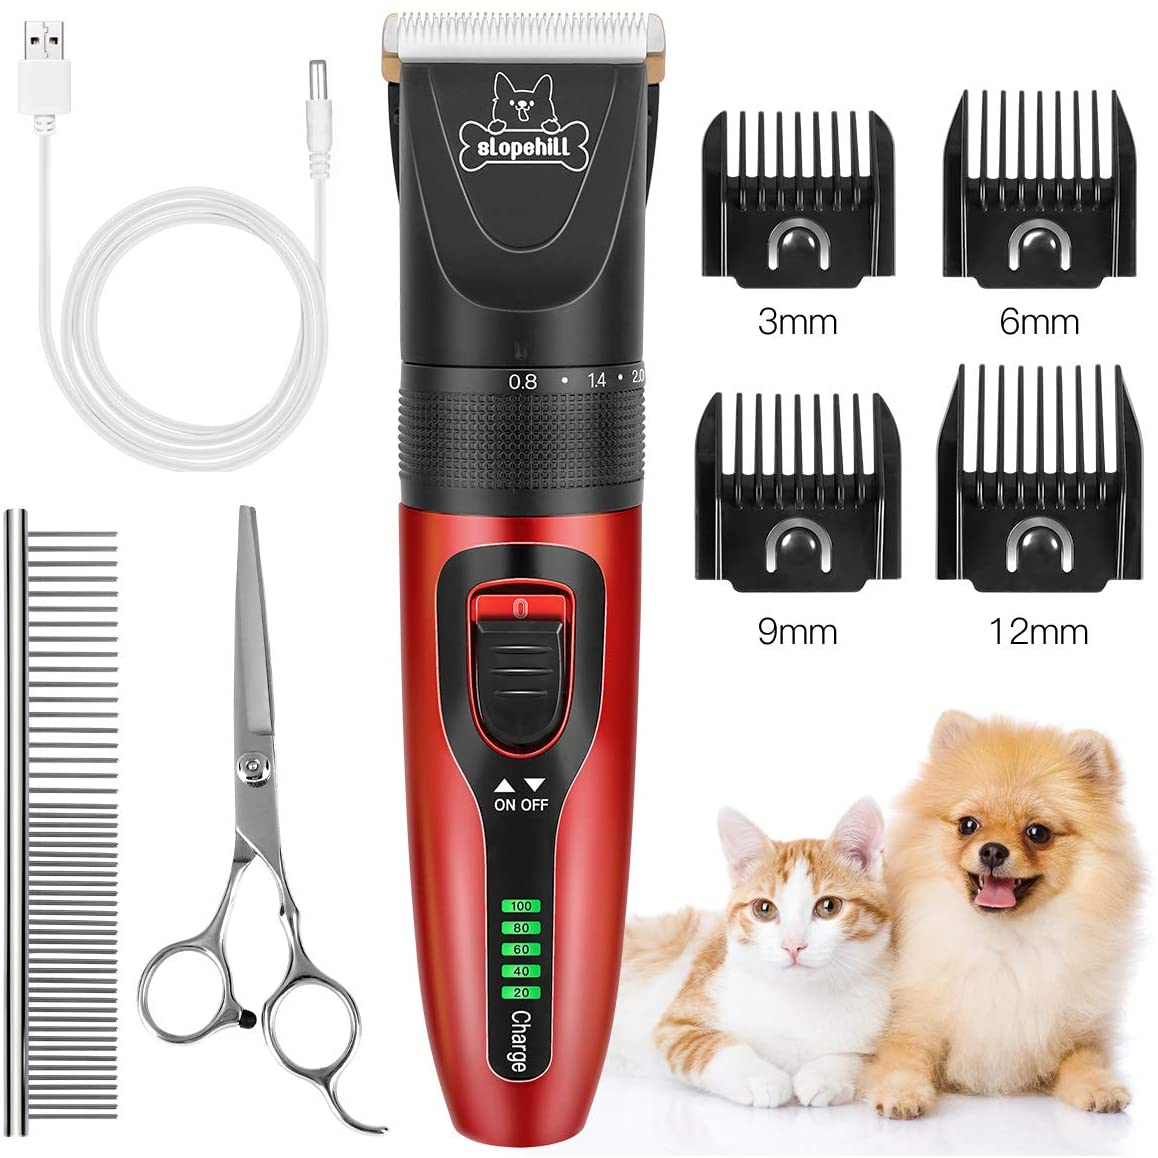 Slopehill™ Dog Cat Rechargeable Cordless Clippers- Dog Grooming Kit , with LED Display